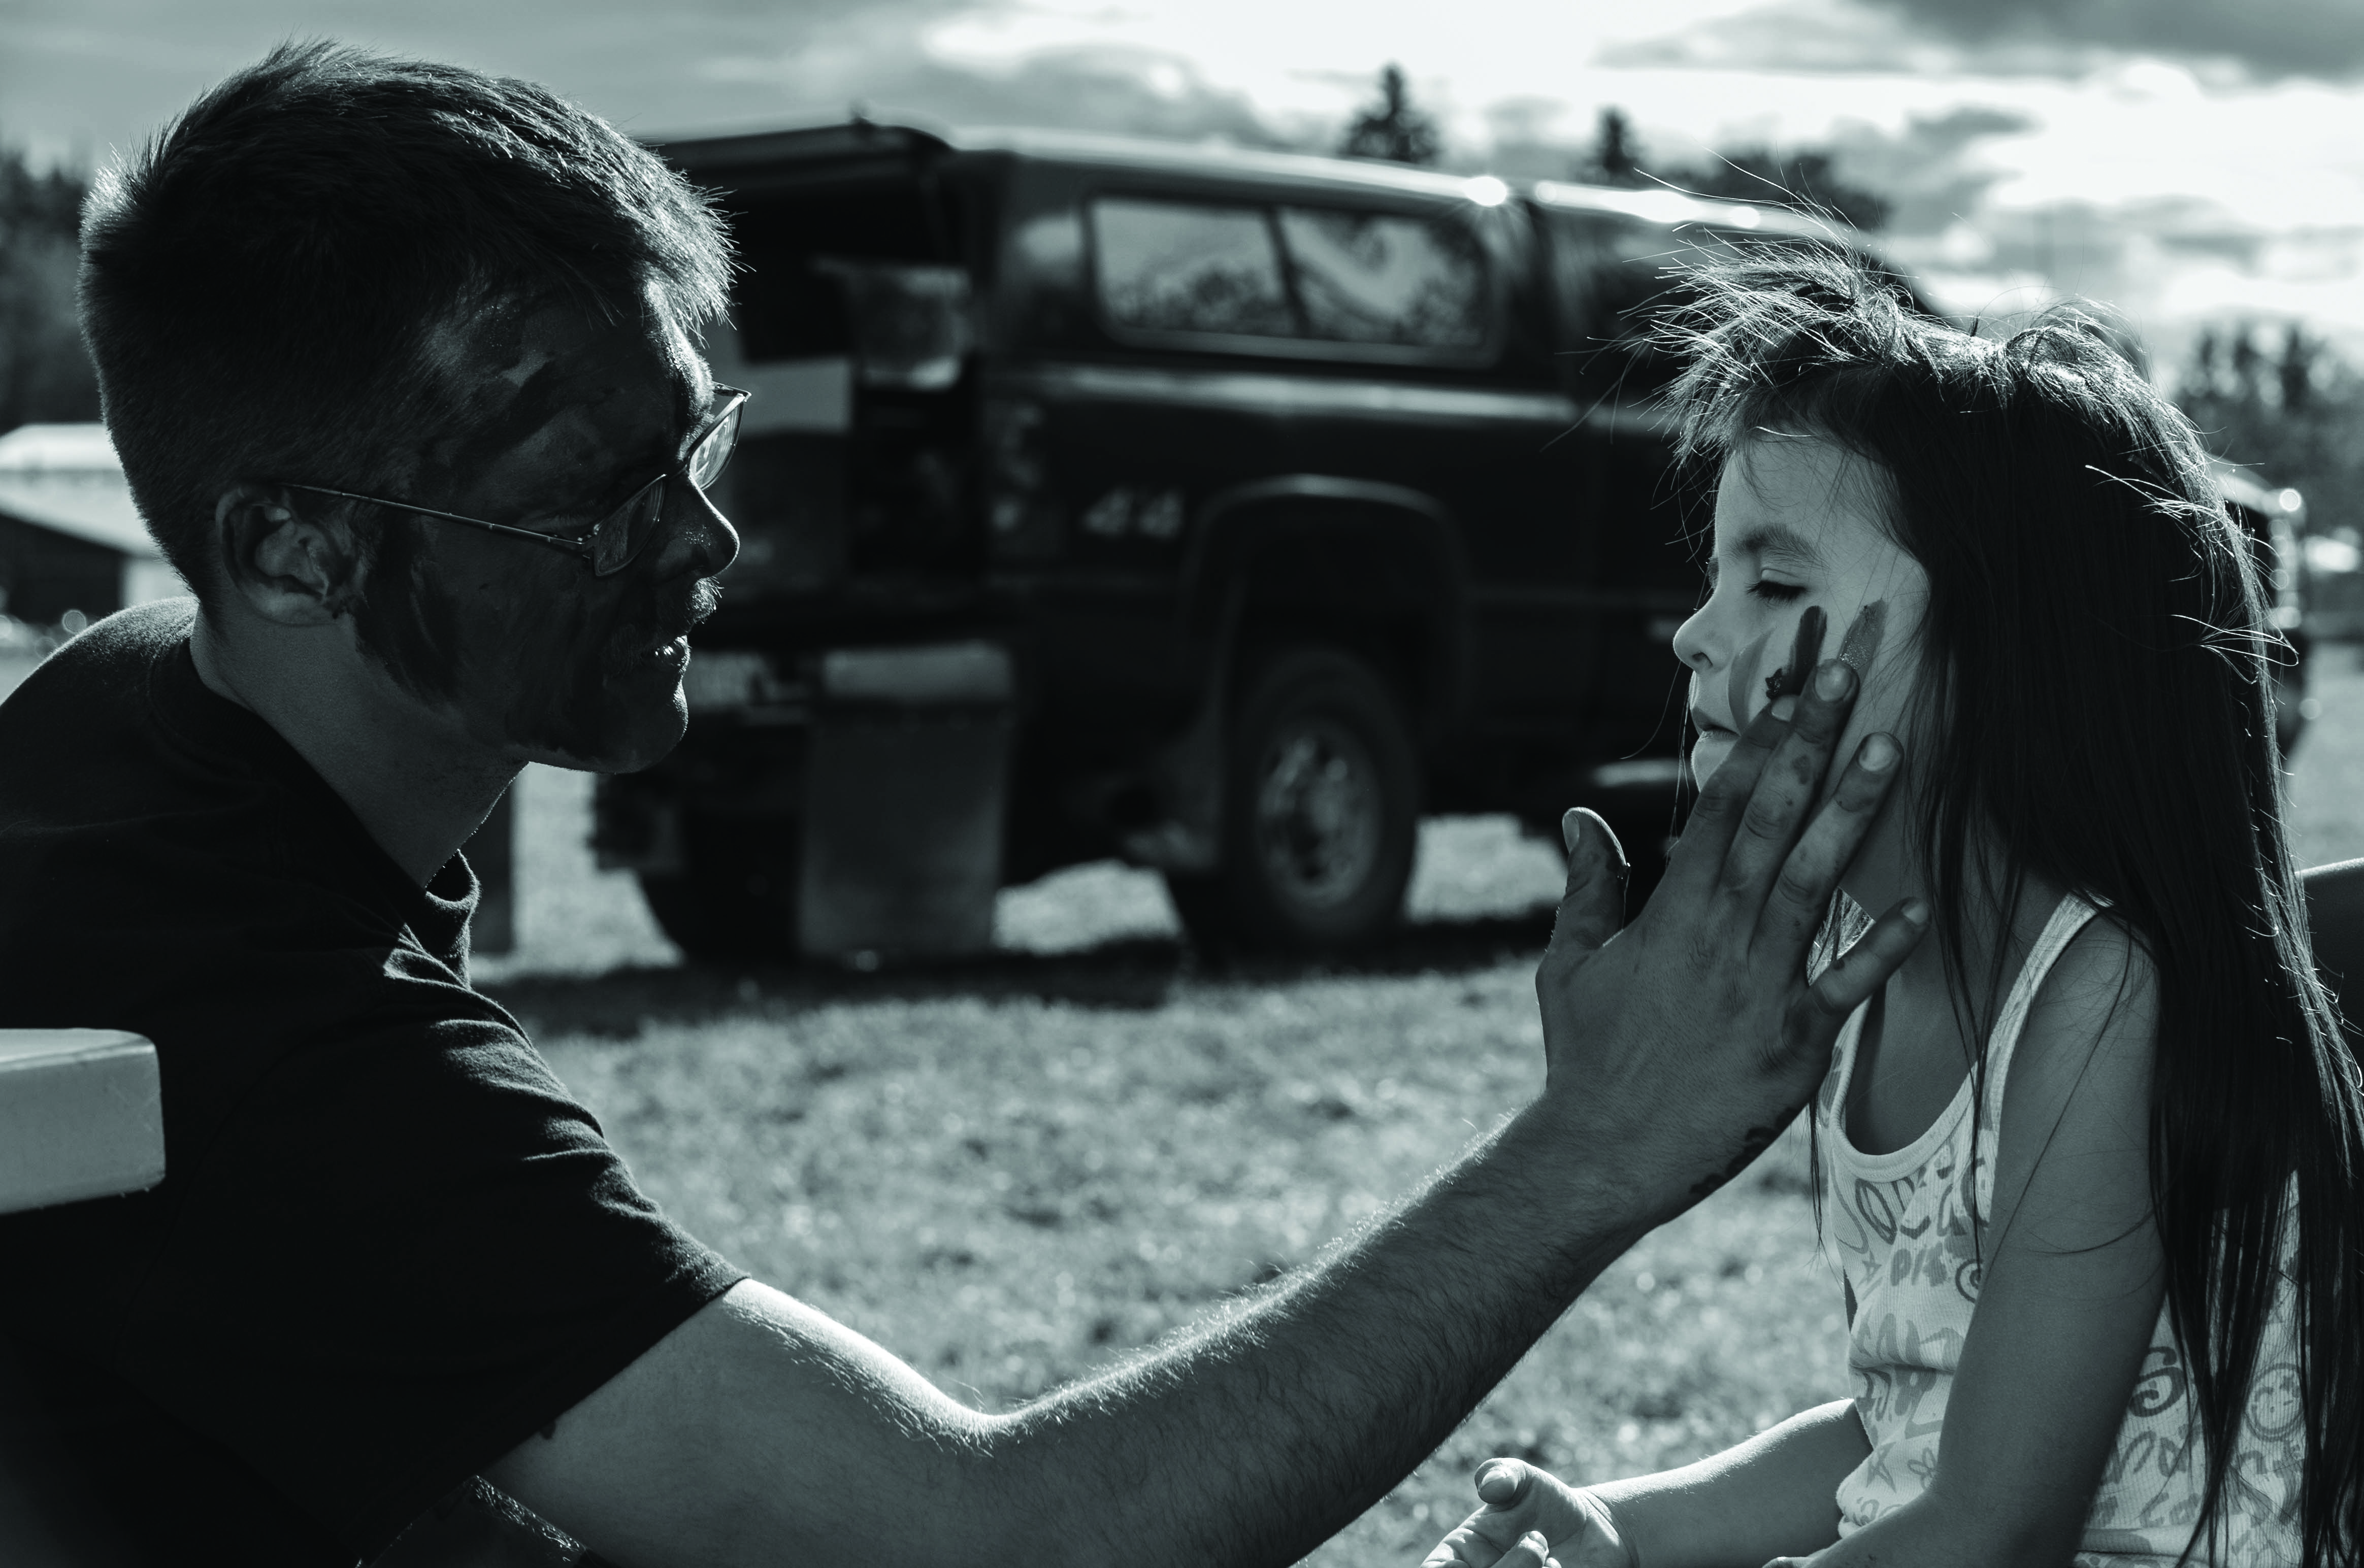 Generalized anxiety treatment bvgg - A Canadian Armed Forces Soldier Painting The Face Of A Child